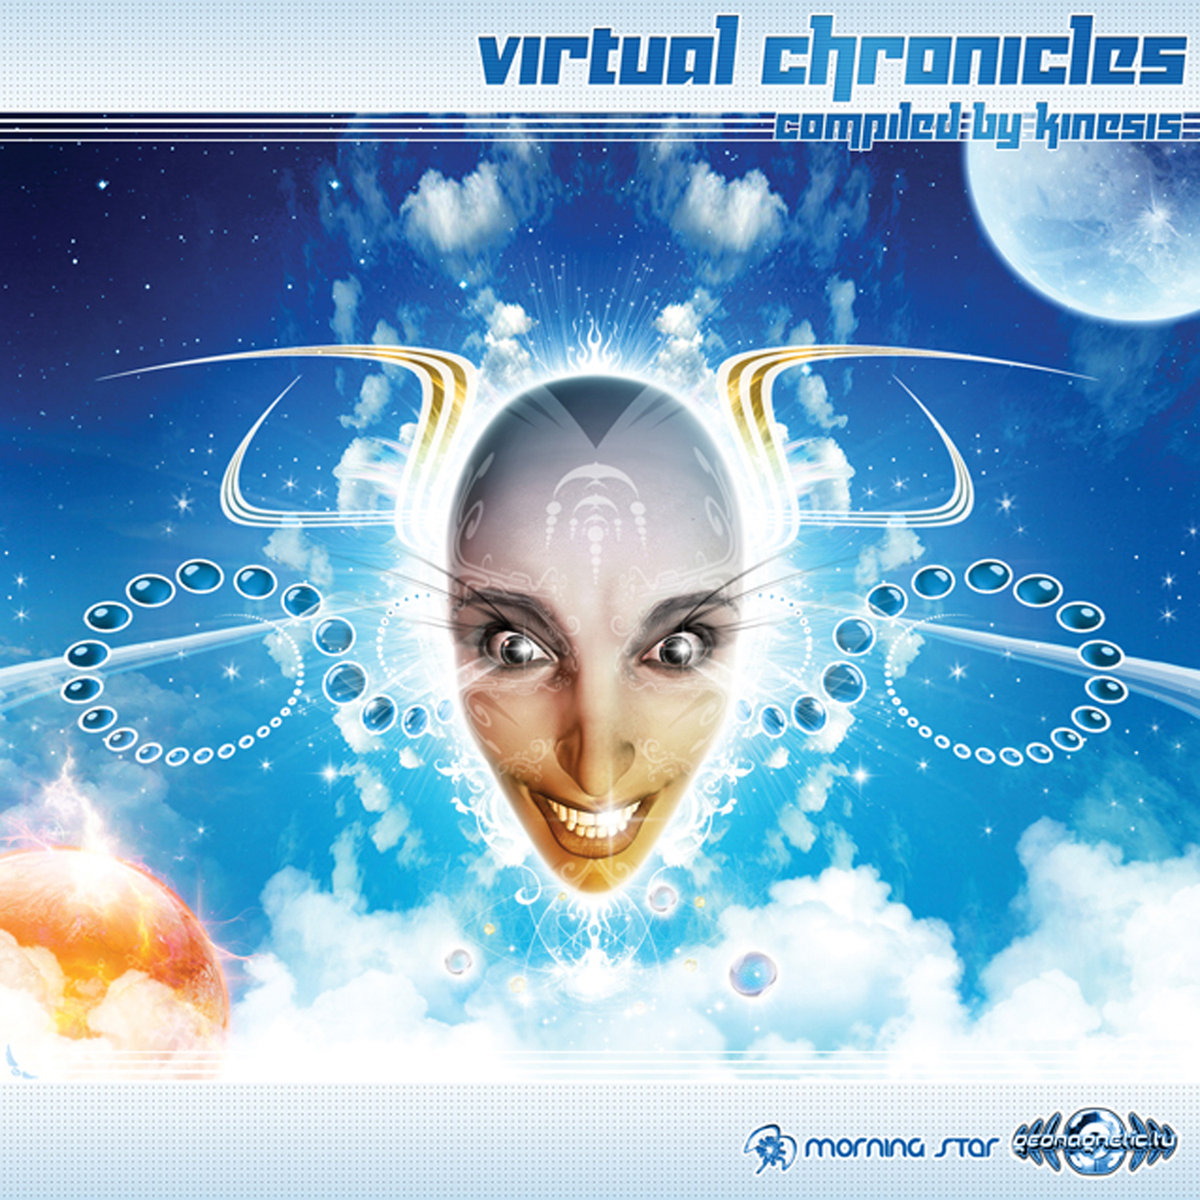 Crystal Network - Elements @ 'Various Artists - Virtual Chronicles (Compiled by Kinesis)' album (electronic, goa)